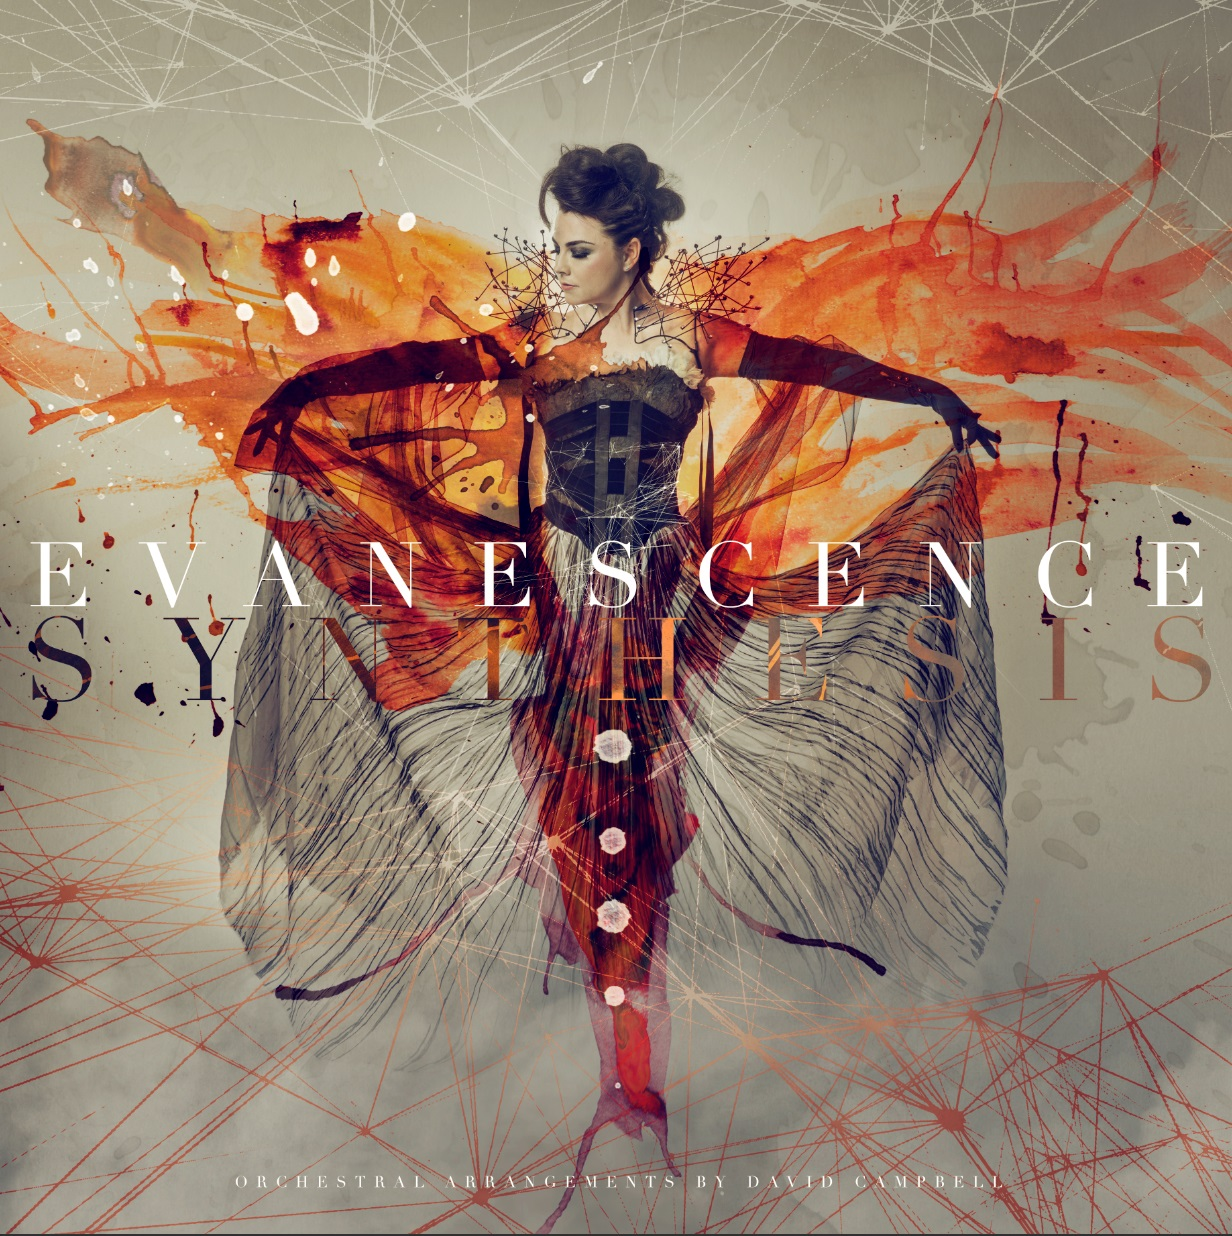 evanescence_synthesis_album_cover-142108074.jpg